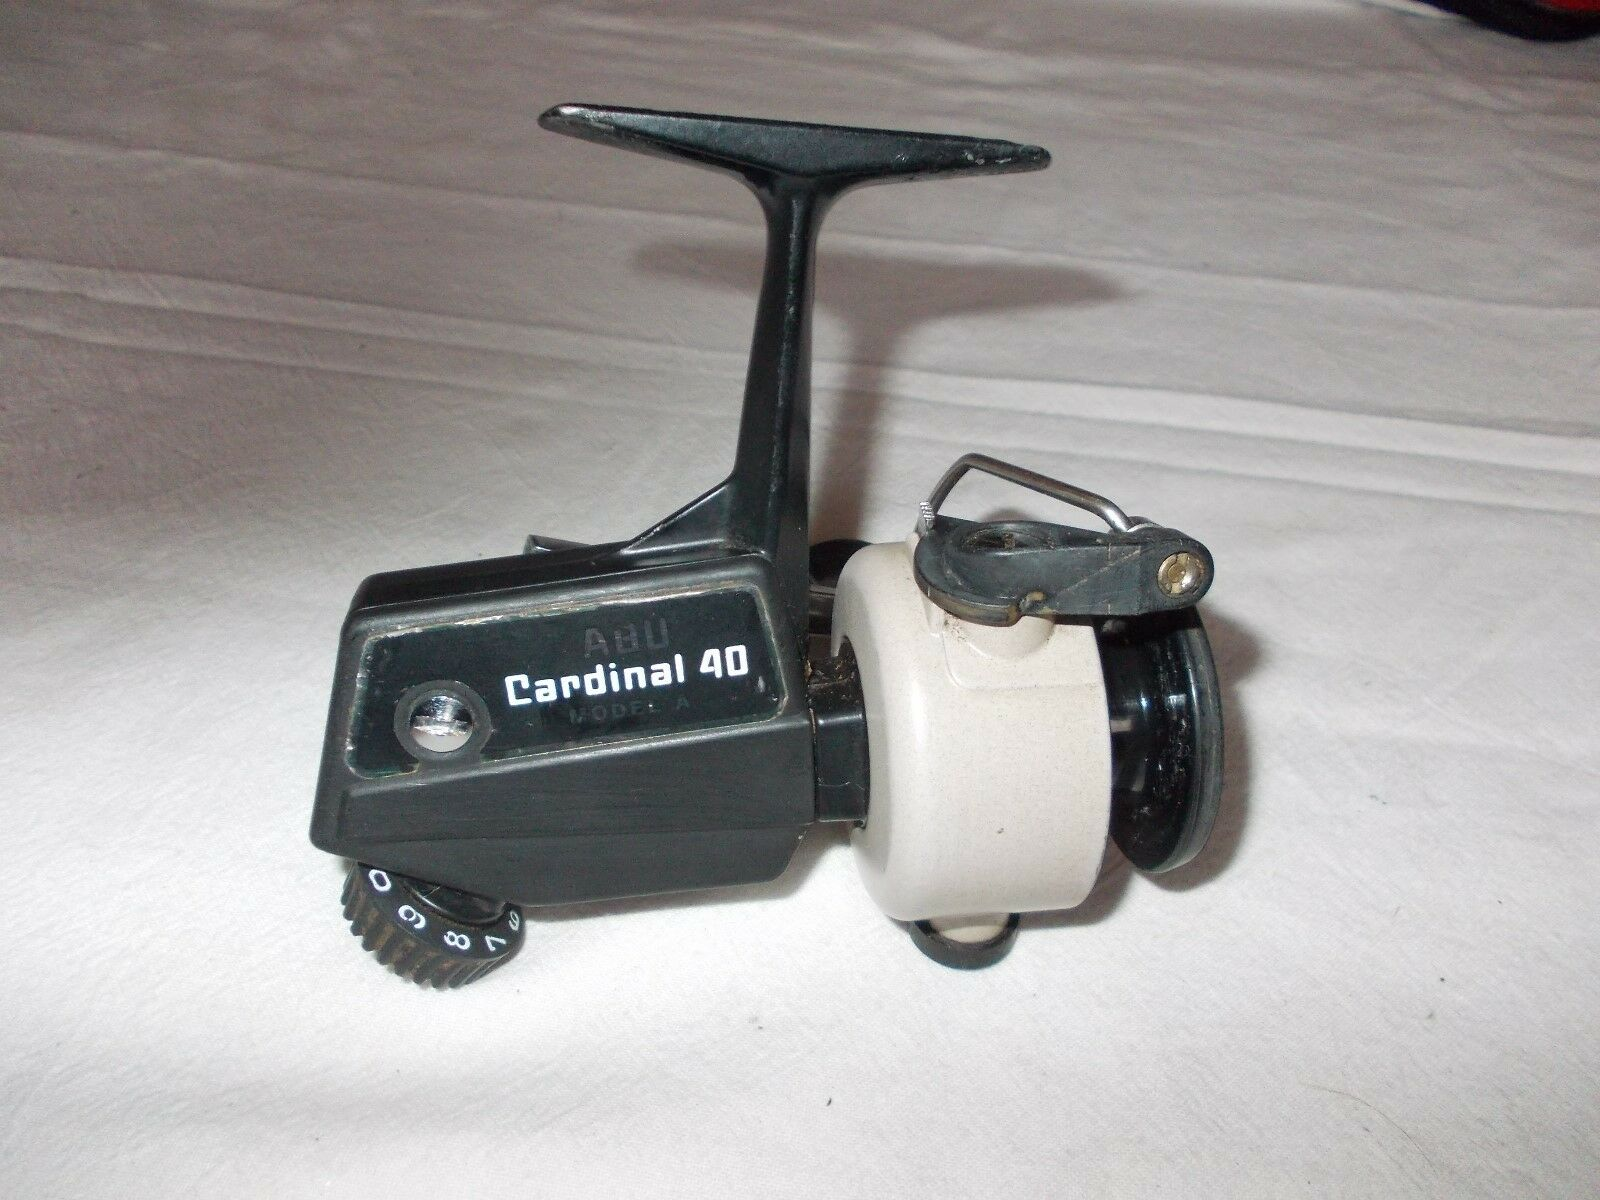 VINTAGE ABU CARDINAL 40  Model A  Fixed Spool Reel  --- In nice condition.  large selection